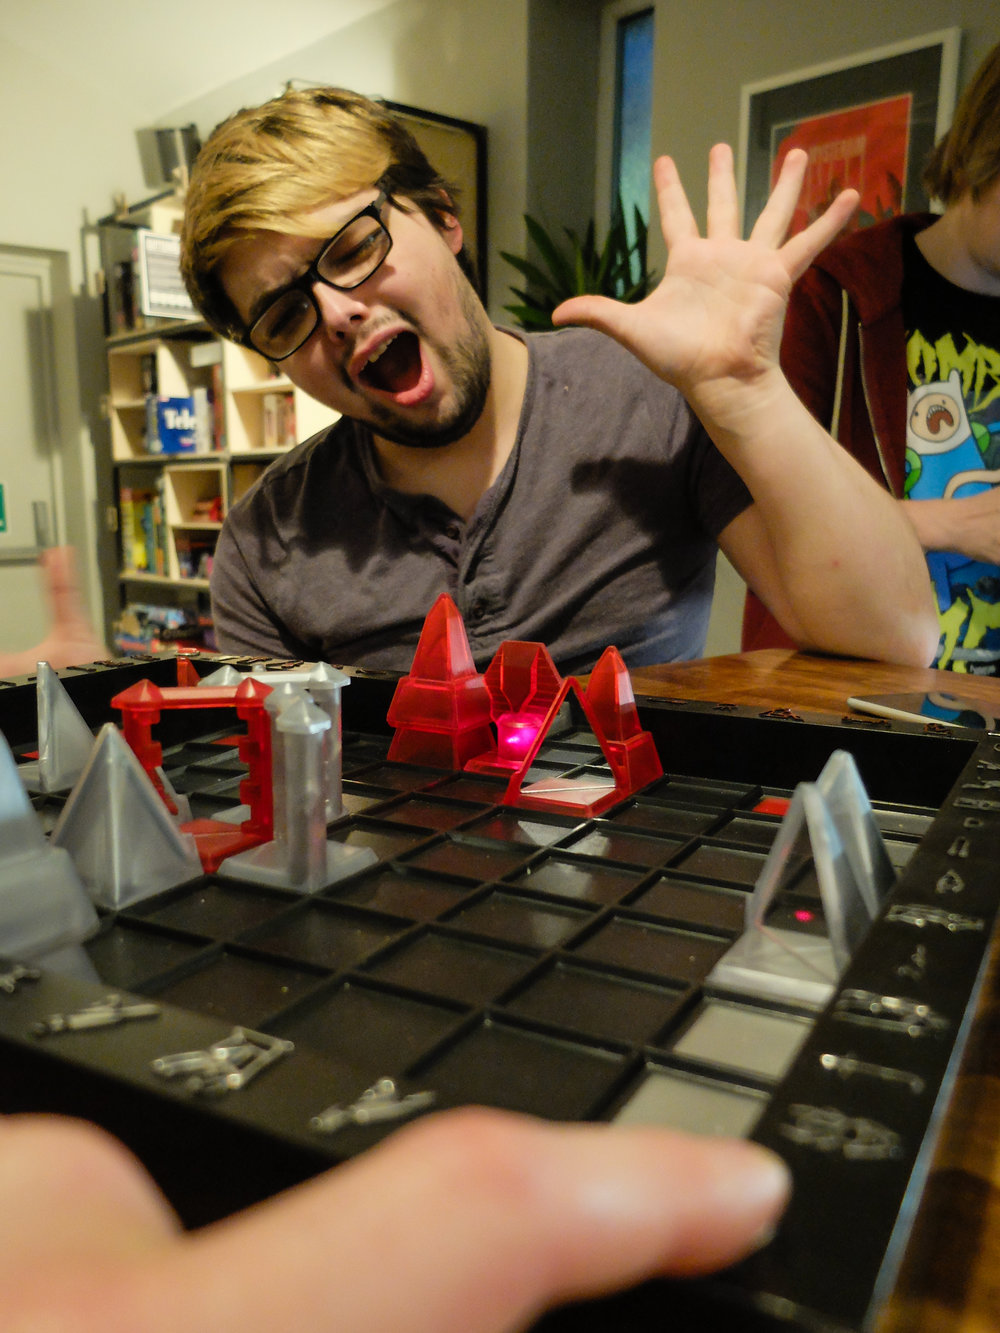 The plastic extravaganza that is Khet (and Patrick, losing dramatically)